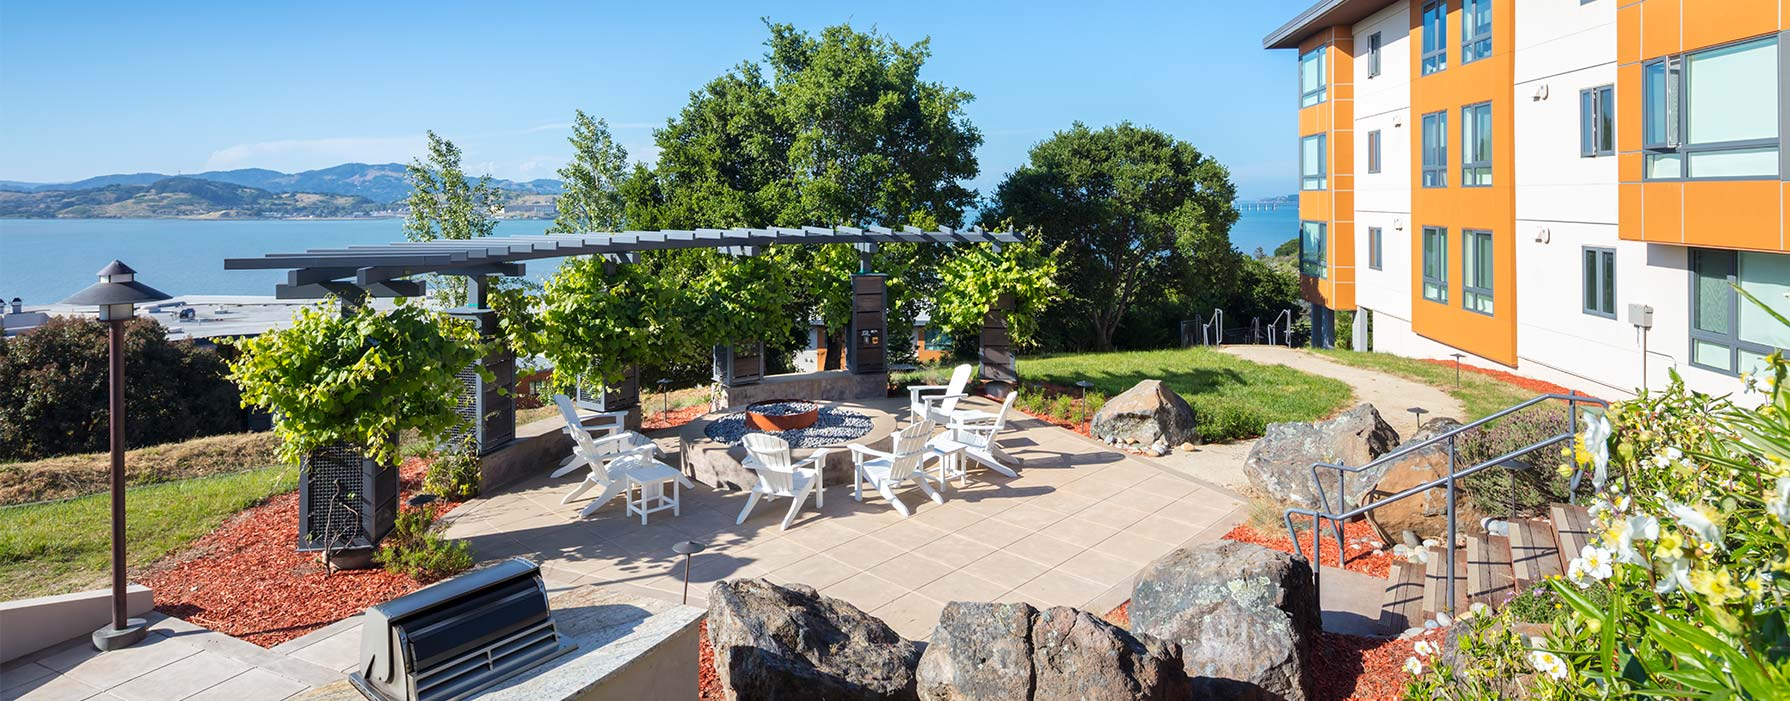 Preserve at Marin Apartment Homes - Corte Madera, CA - Outdoor BBQ and Fireplace